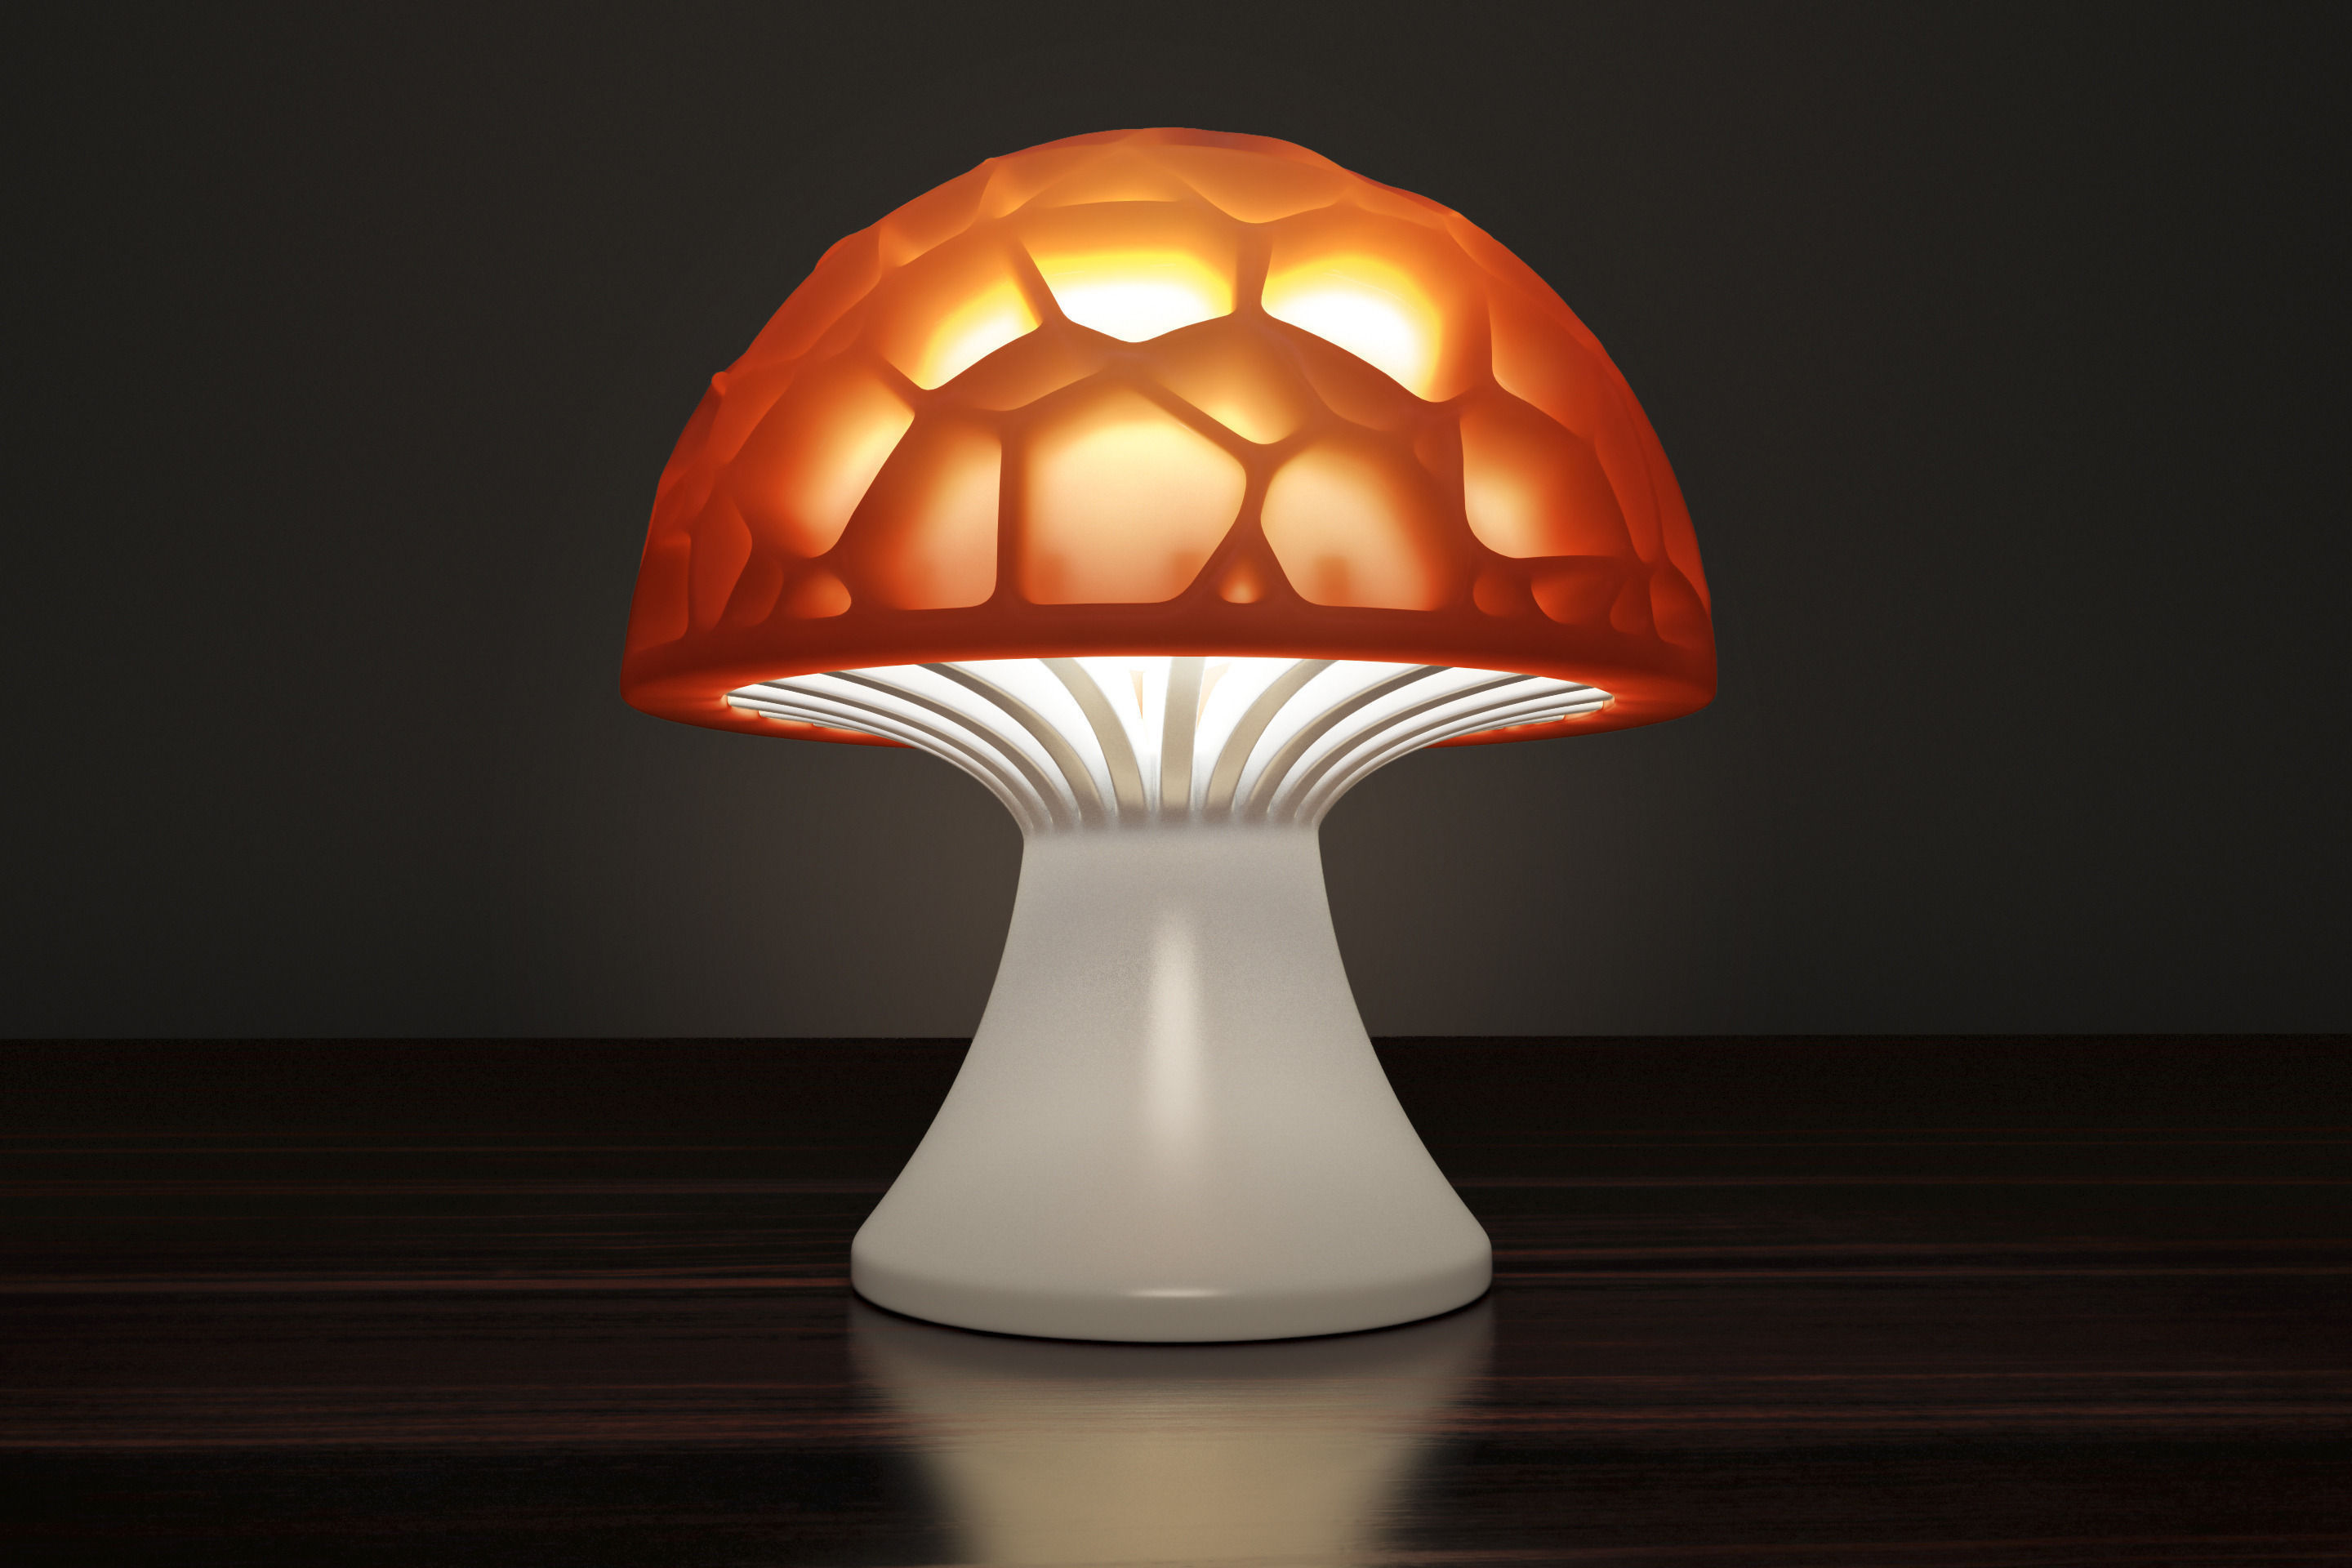 Generative design Voronoi mushroom lamp high quality version